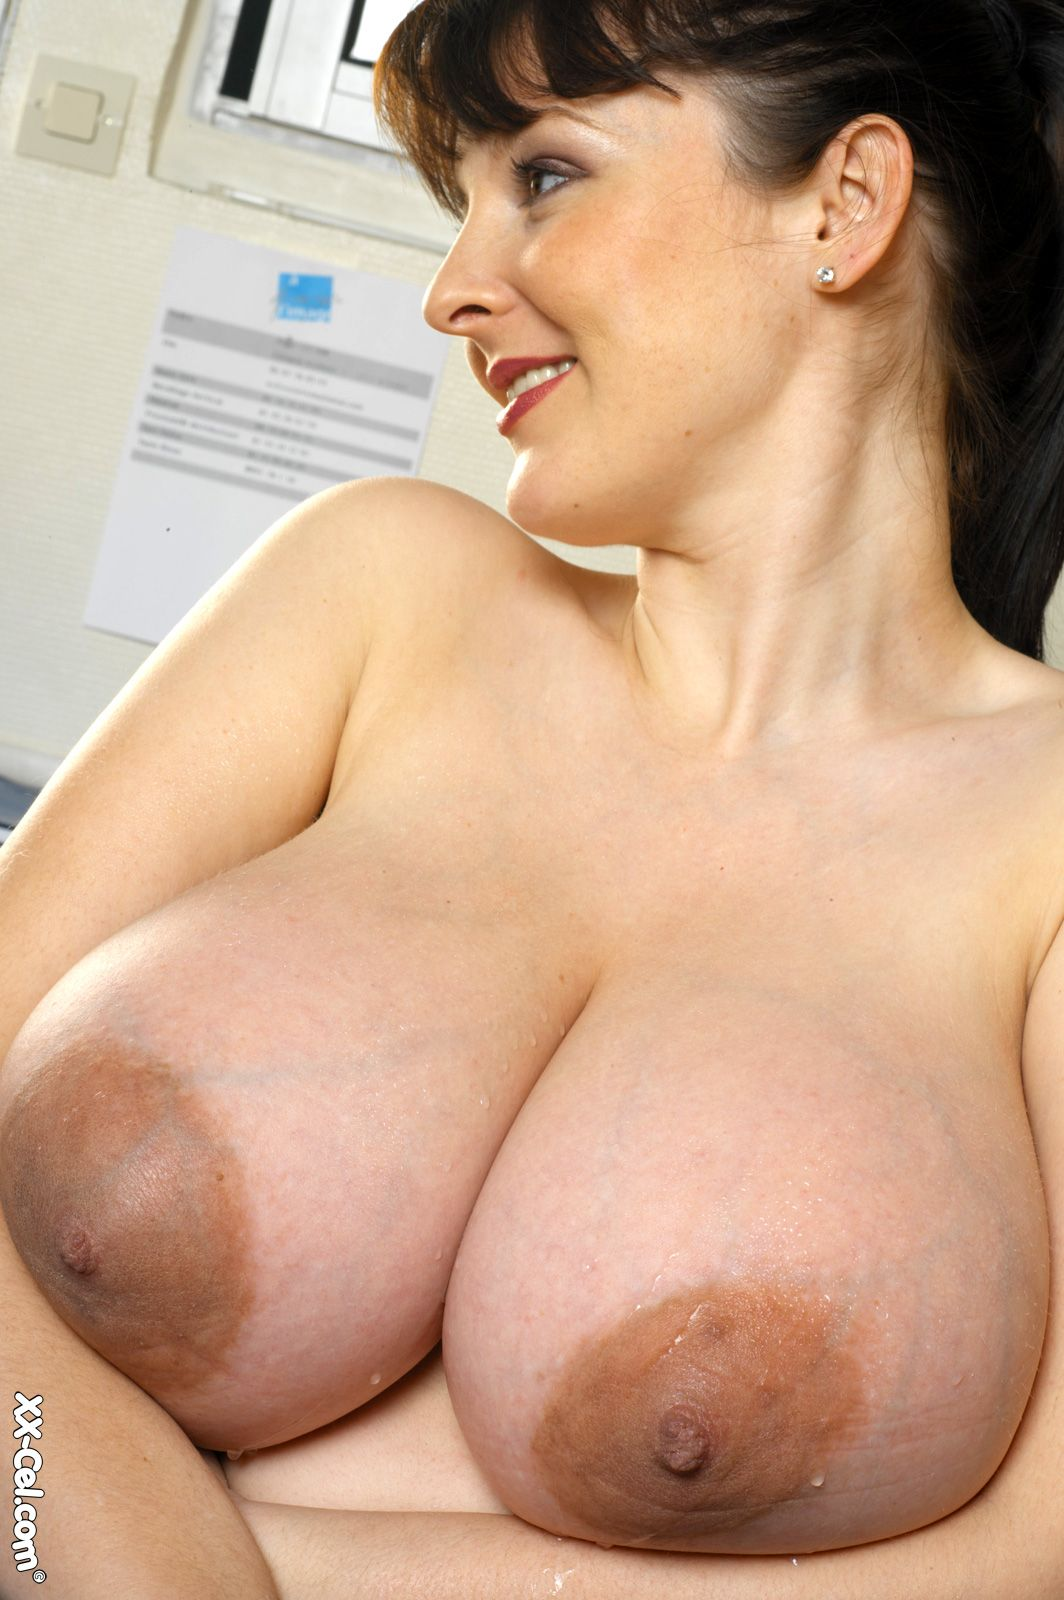 Consider, that Tiny tits big nipples are